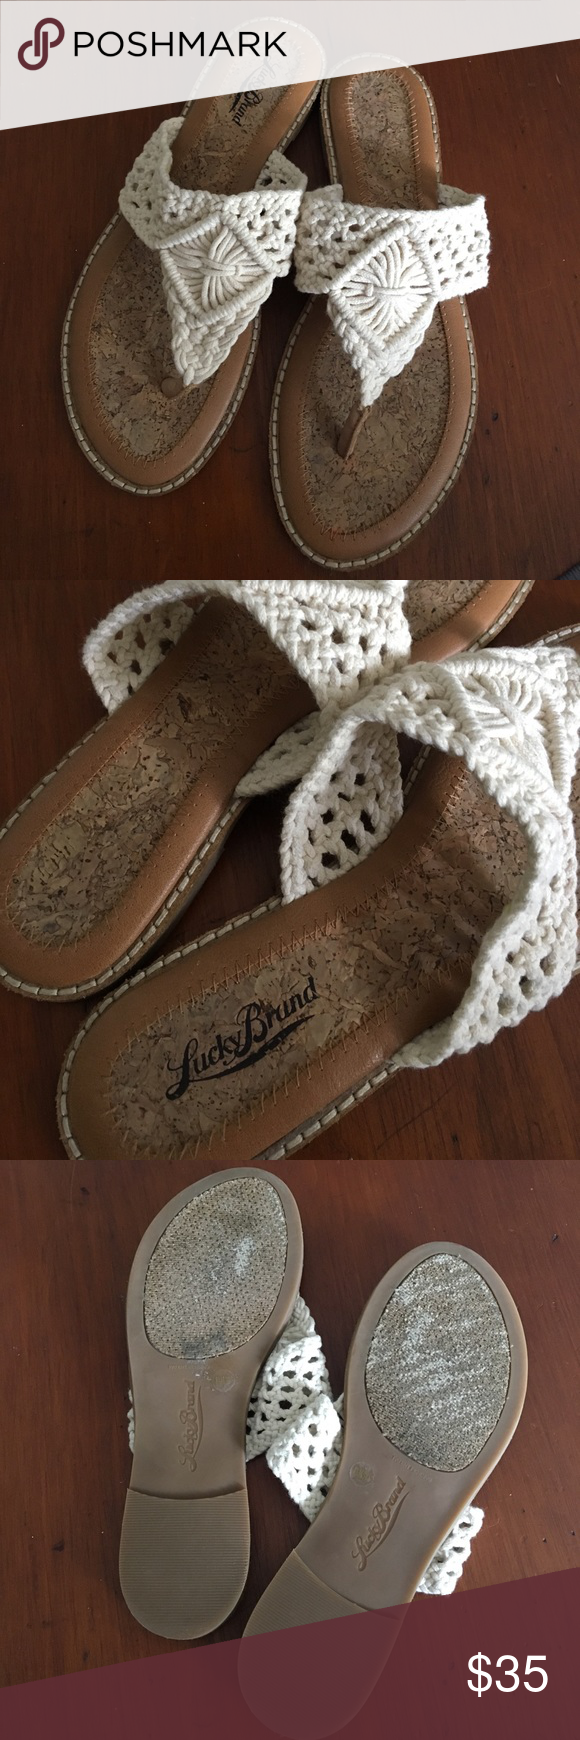 Lucky Brand Sandals Super cute Lucky Brand sandals. Great condition Lucky Brand Shoes Sandals